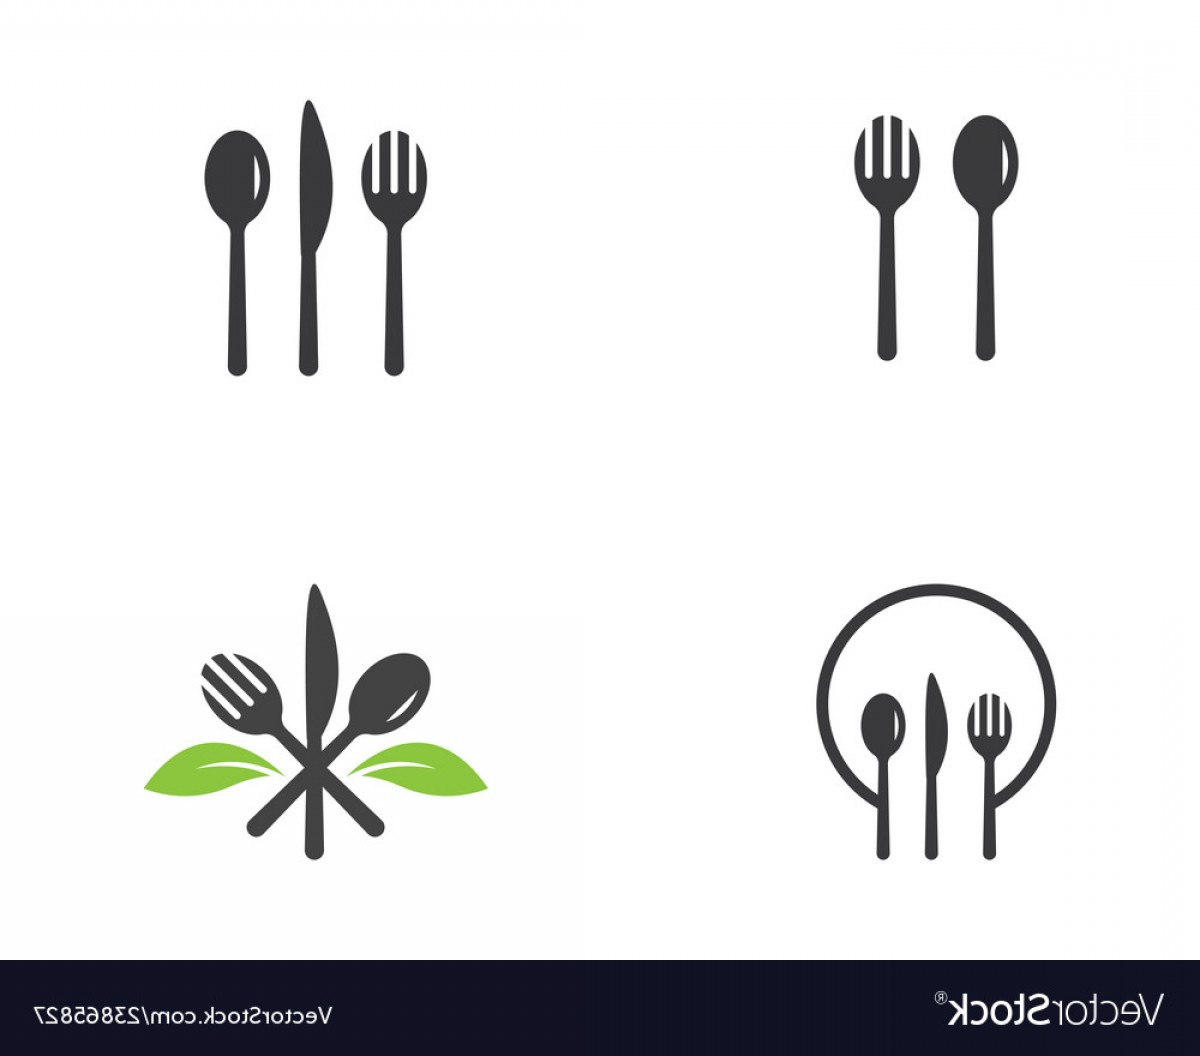 In Icon Stock Vector: Food Cover Icon Stock Vector